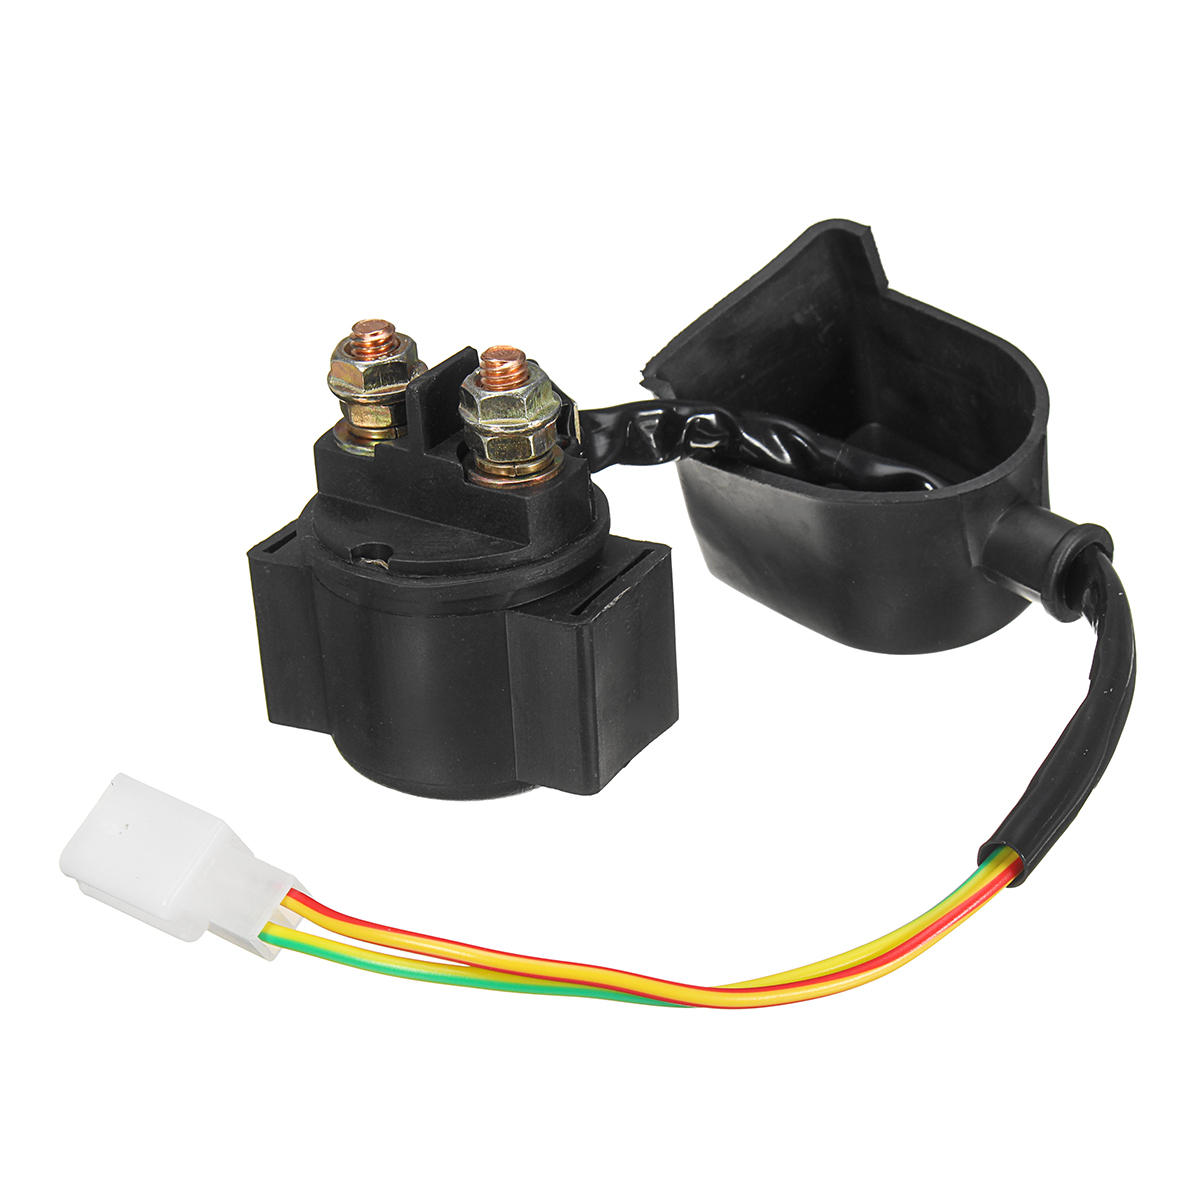 Atv Parts & Accessories 12v Starter Solenoid Relay For Atv Go Kart Pit Dirt Bike Quad 90cc 110cc 125cc To Ensure A Like-New Appearance Indefinably Atv,rv,boat & Other Vehicle